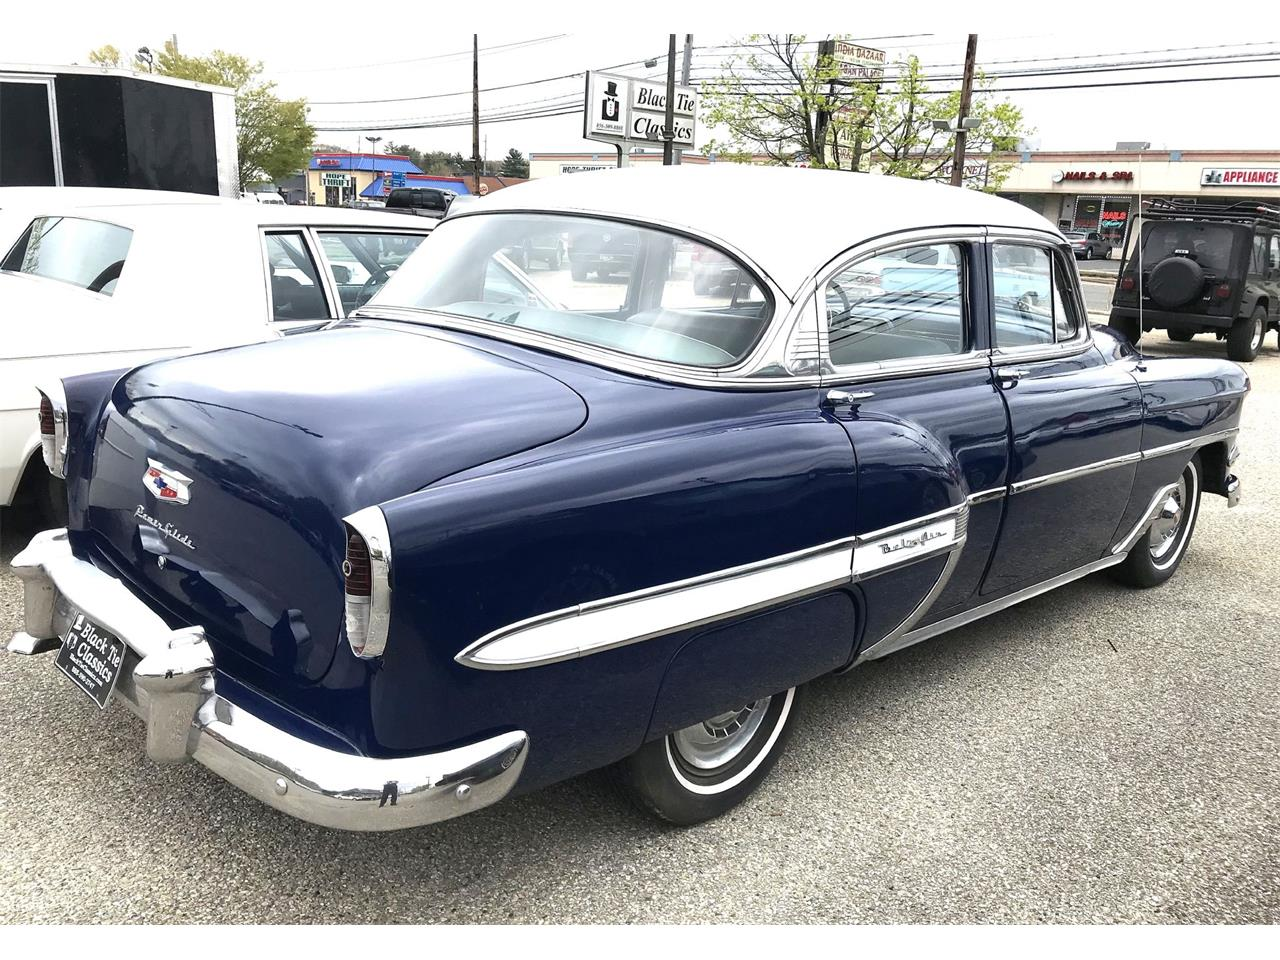 Large Picture of '54 Chevrolet Bel Air located in Stratford New Jersey - $18,990.00 - OCN6